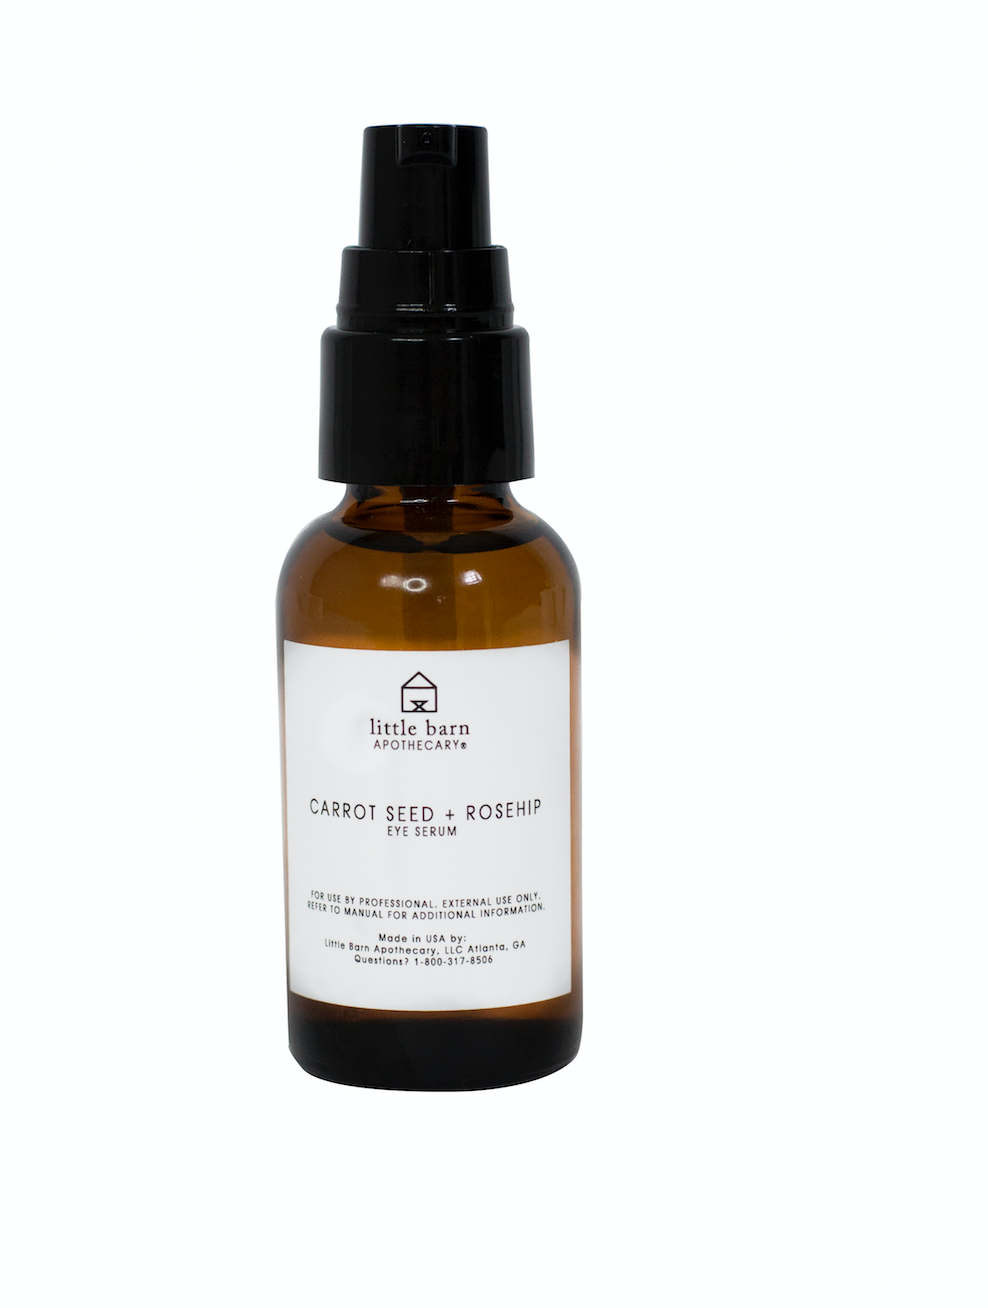 PRO USE Carrot Seed + Rosehip Eye Serum 1 oz